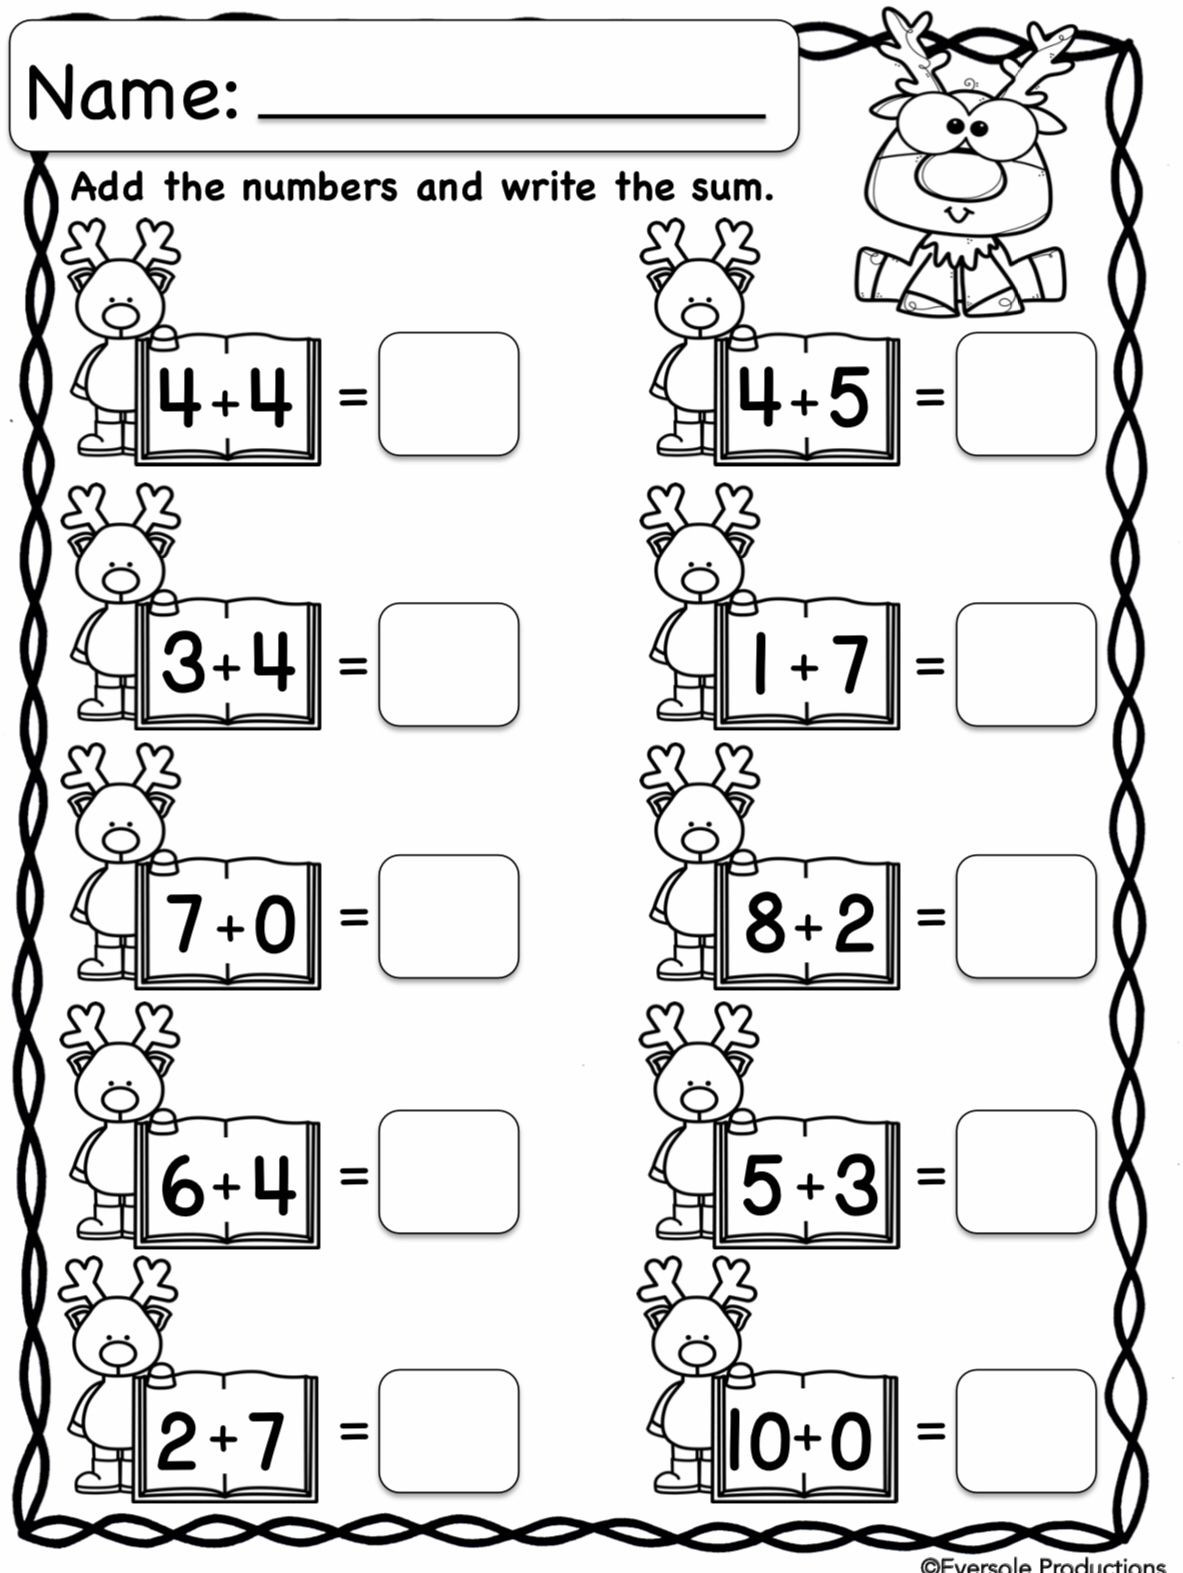 Subtraction Worksheet for Kindergarten Christmas Math Adding and Subtracting within 10 No Prep